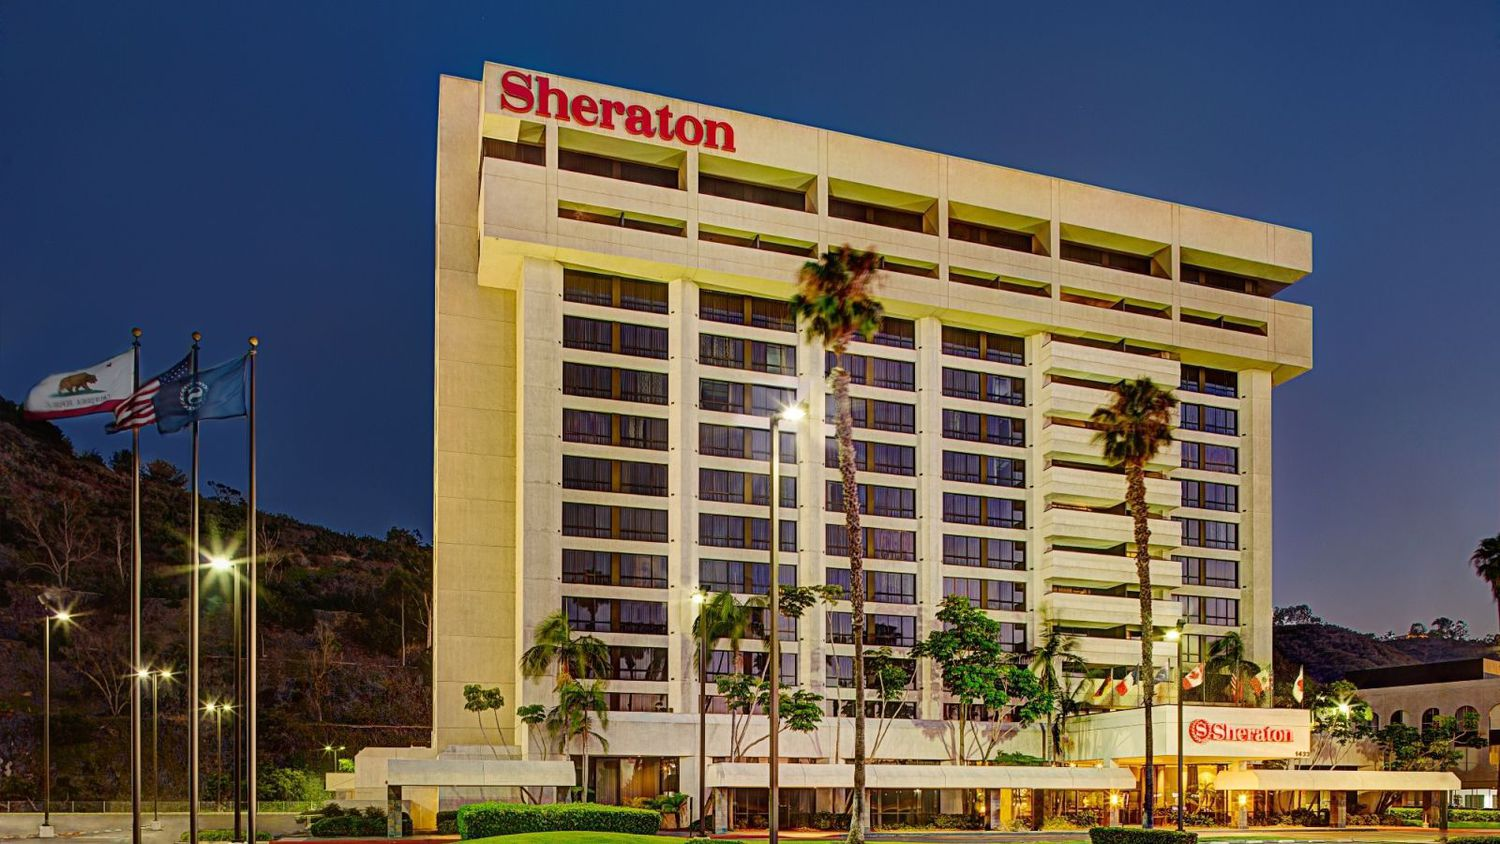 Sheraton mission valley san diego hotel san diego ca for Hotels 92109